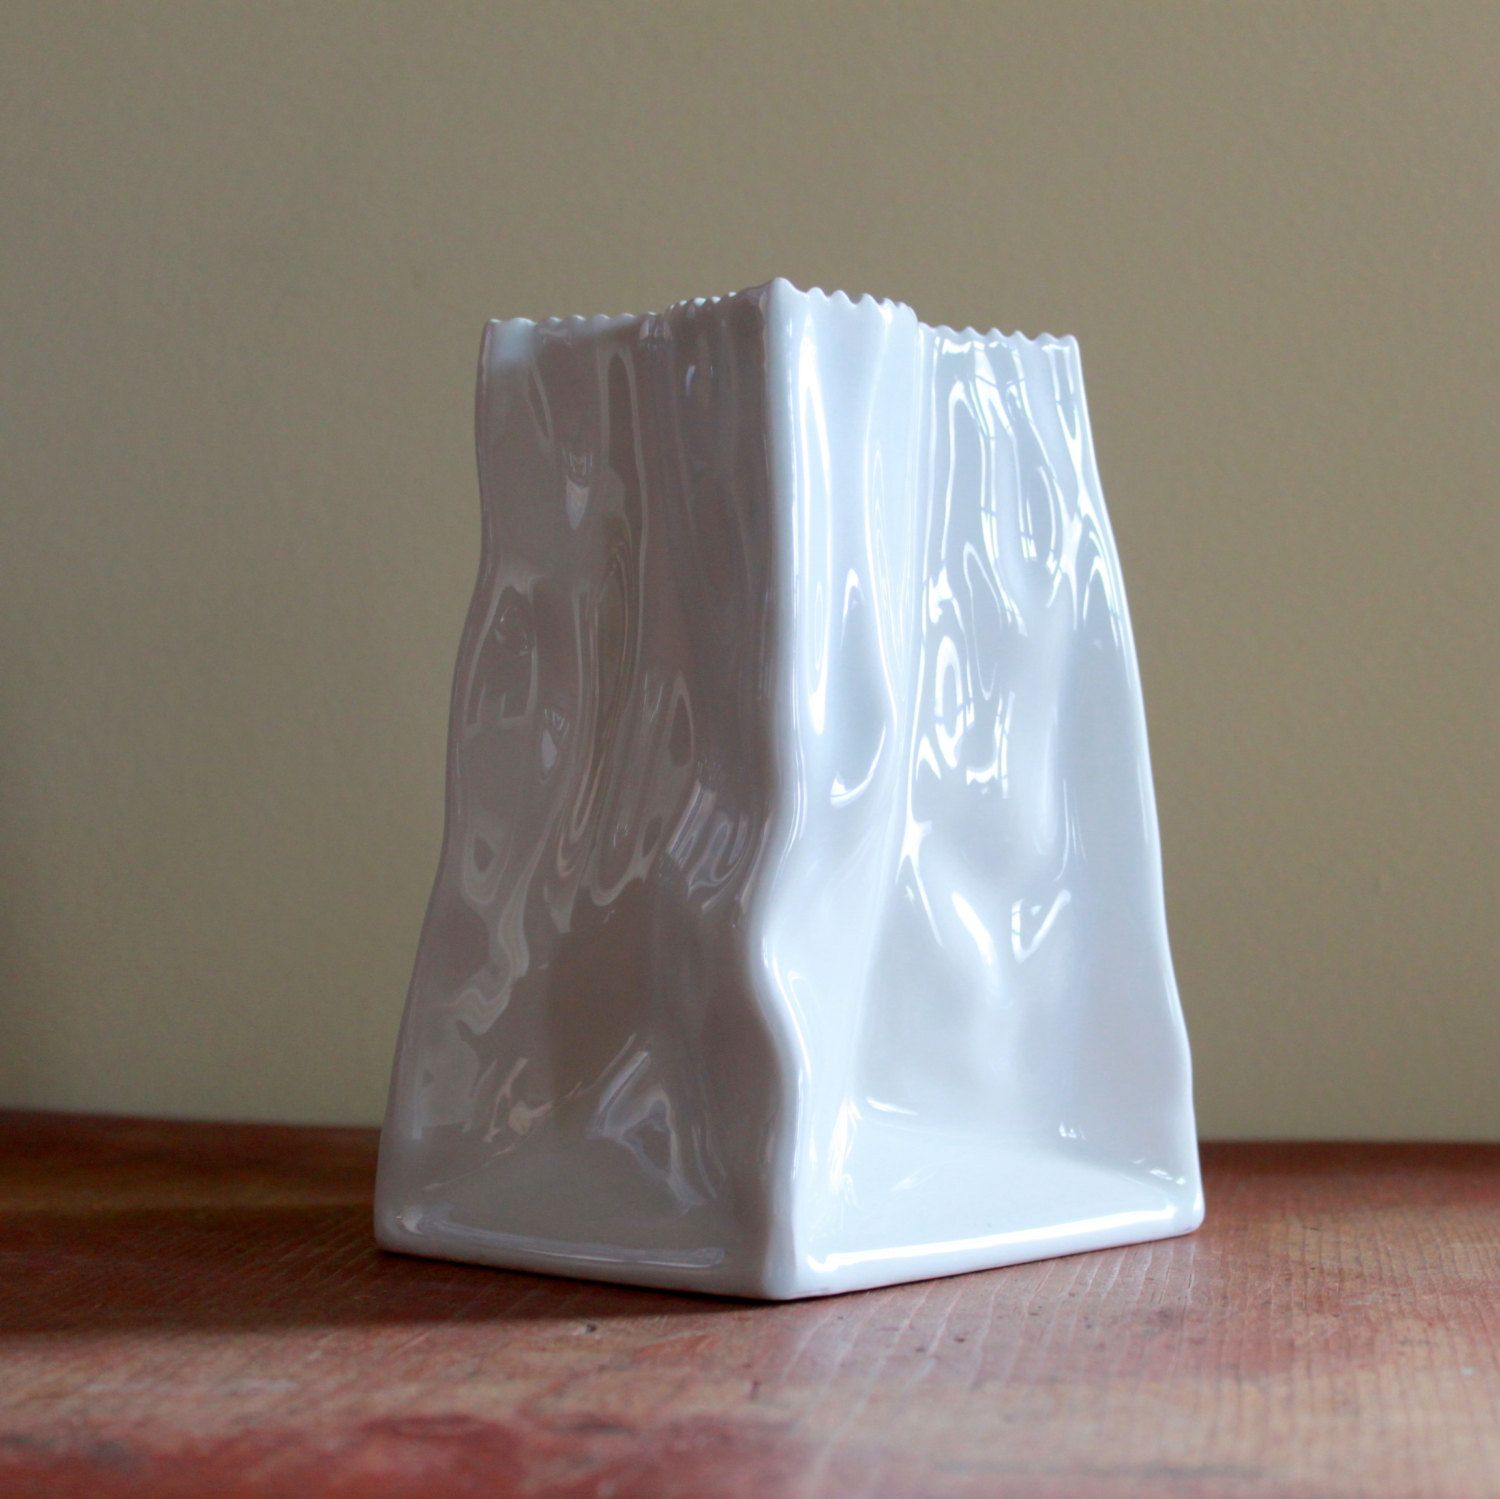 Modern retro white ceramic vase wrinkled paper bag shape 2400 modern retro white ceramic vase wrinkled paper bag shape 2400 via etsy reviewsmspy